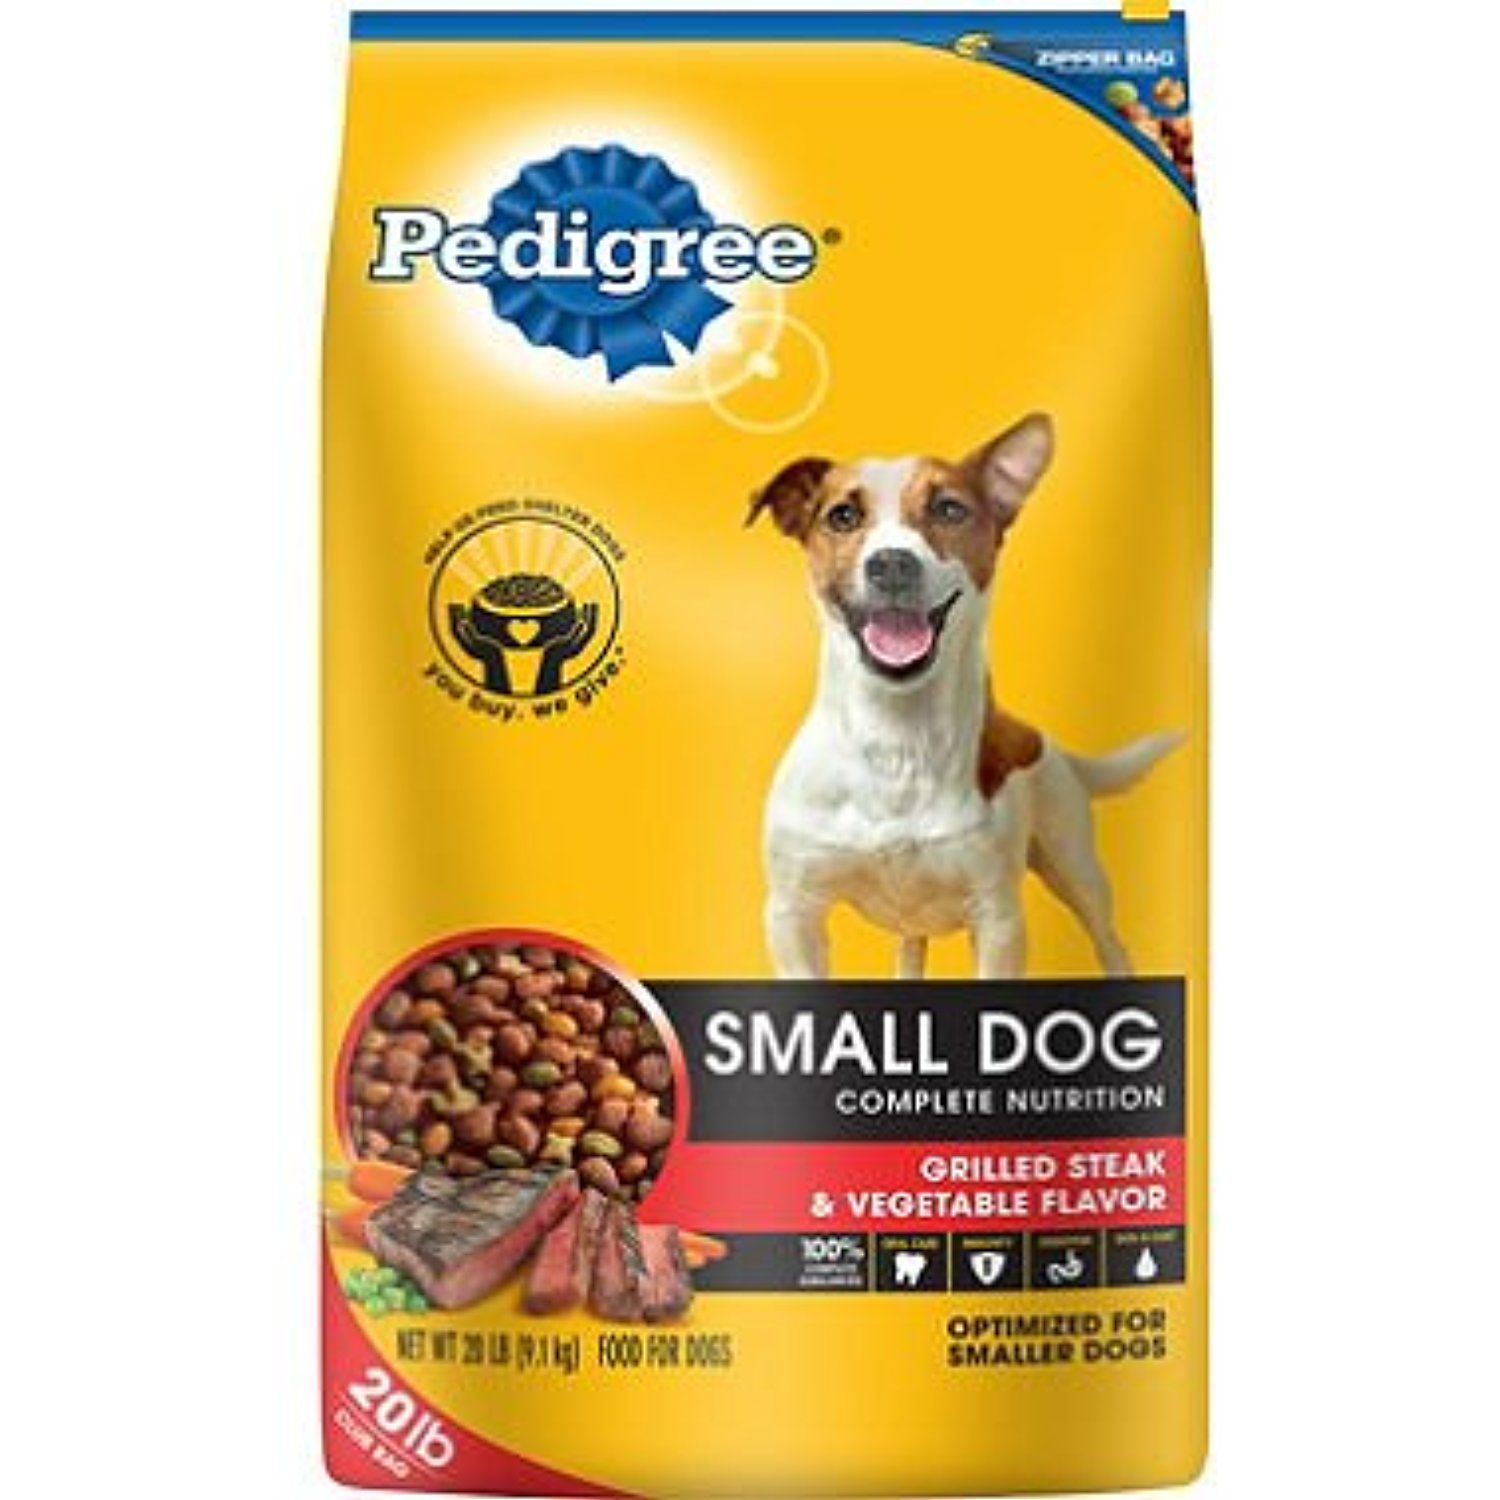 Pedigree Small Dog Targeted Nutrition Dog Food Steak Vegetable